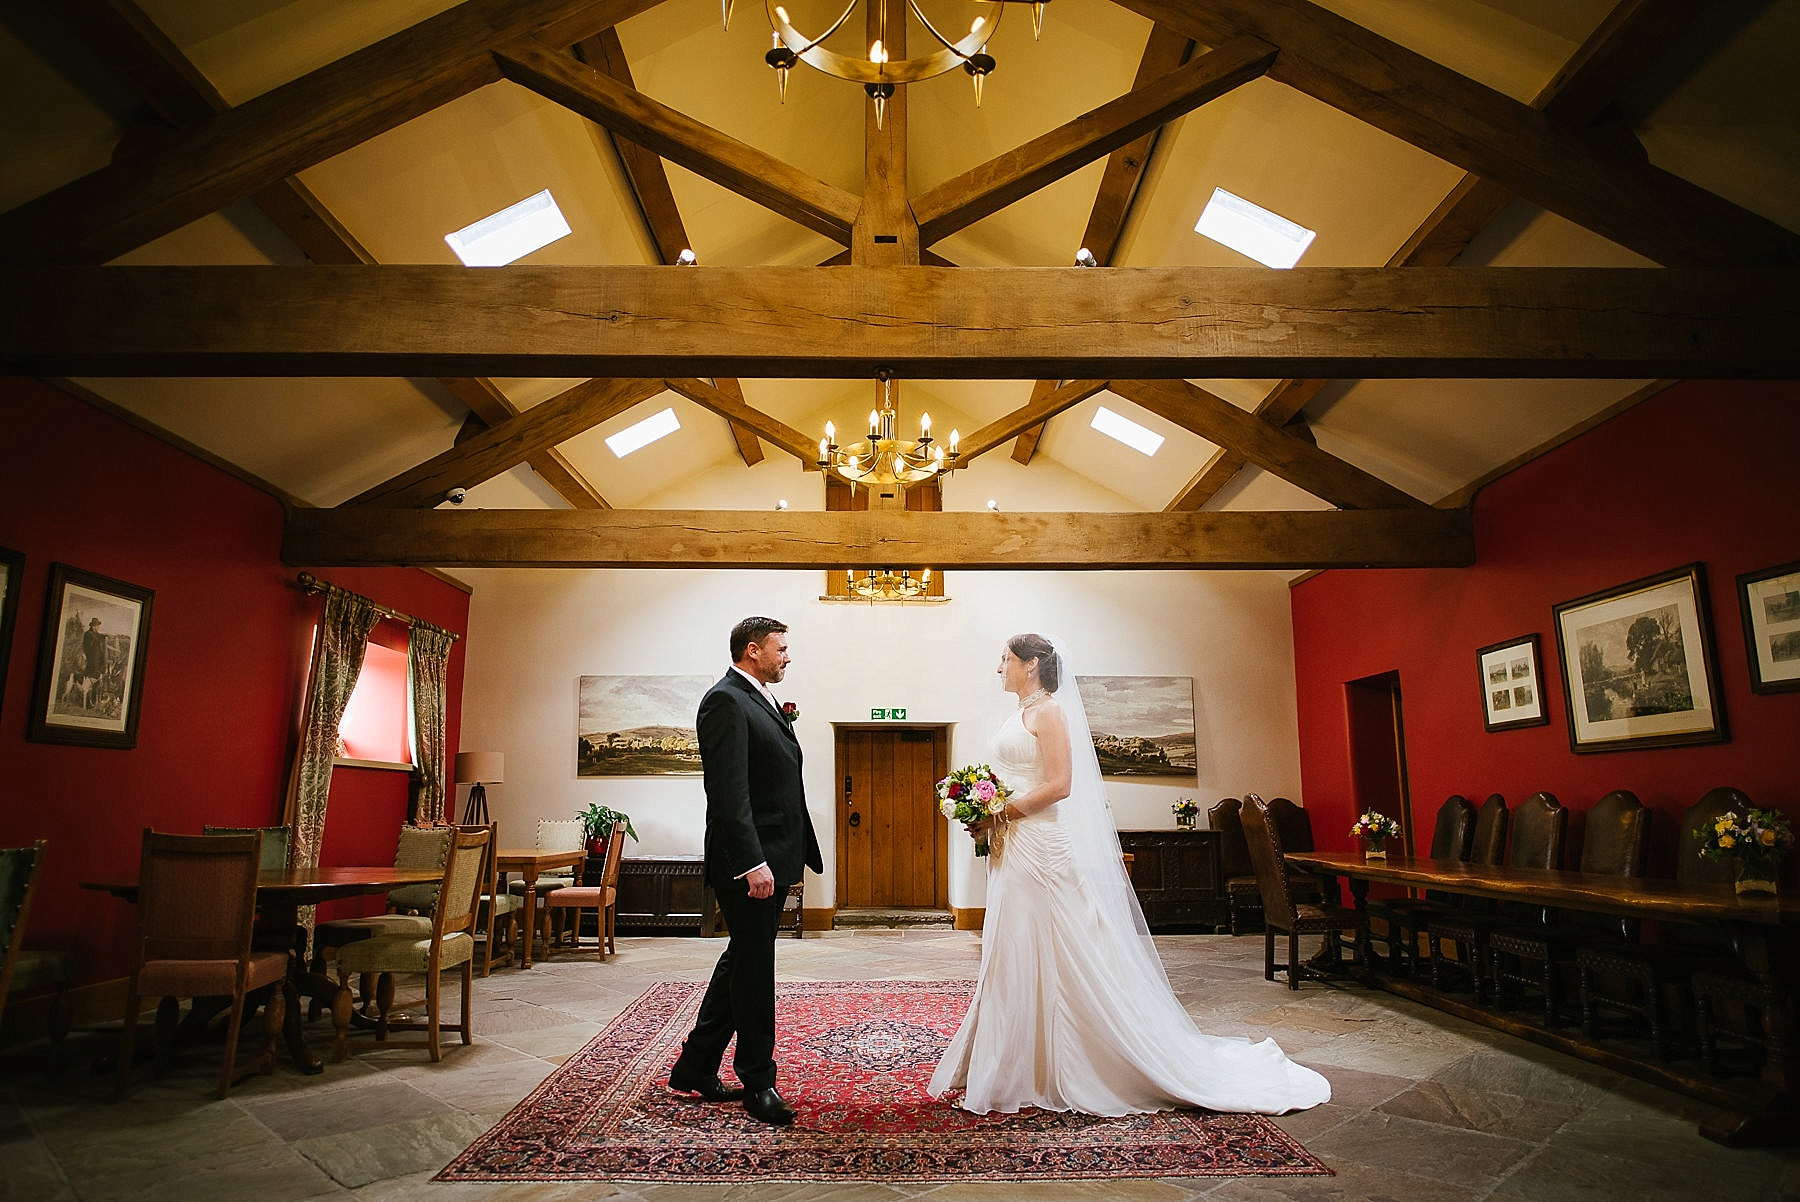 The bride and groom walk towards each other inside Browsholme Hall